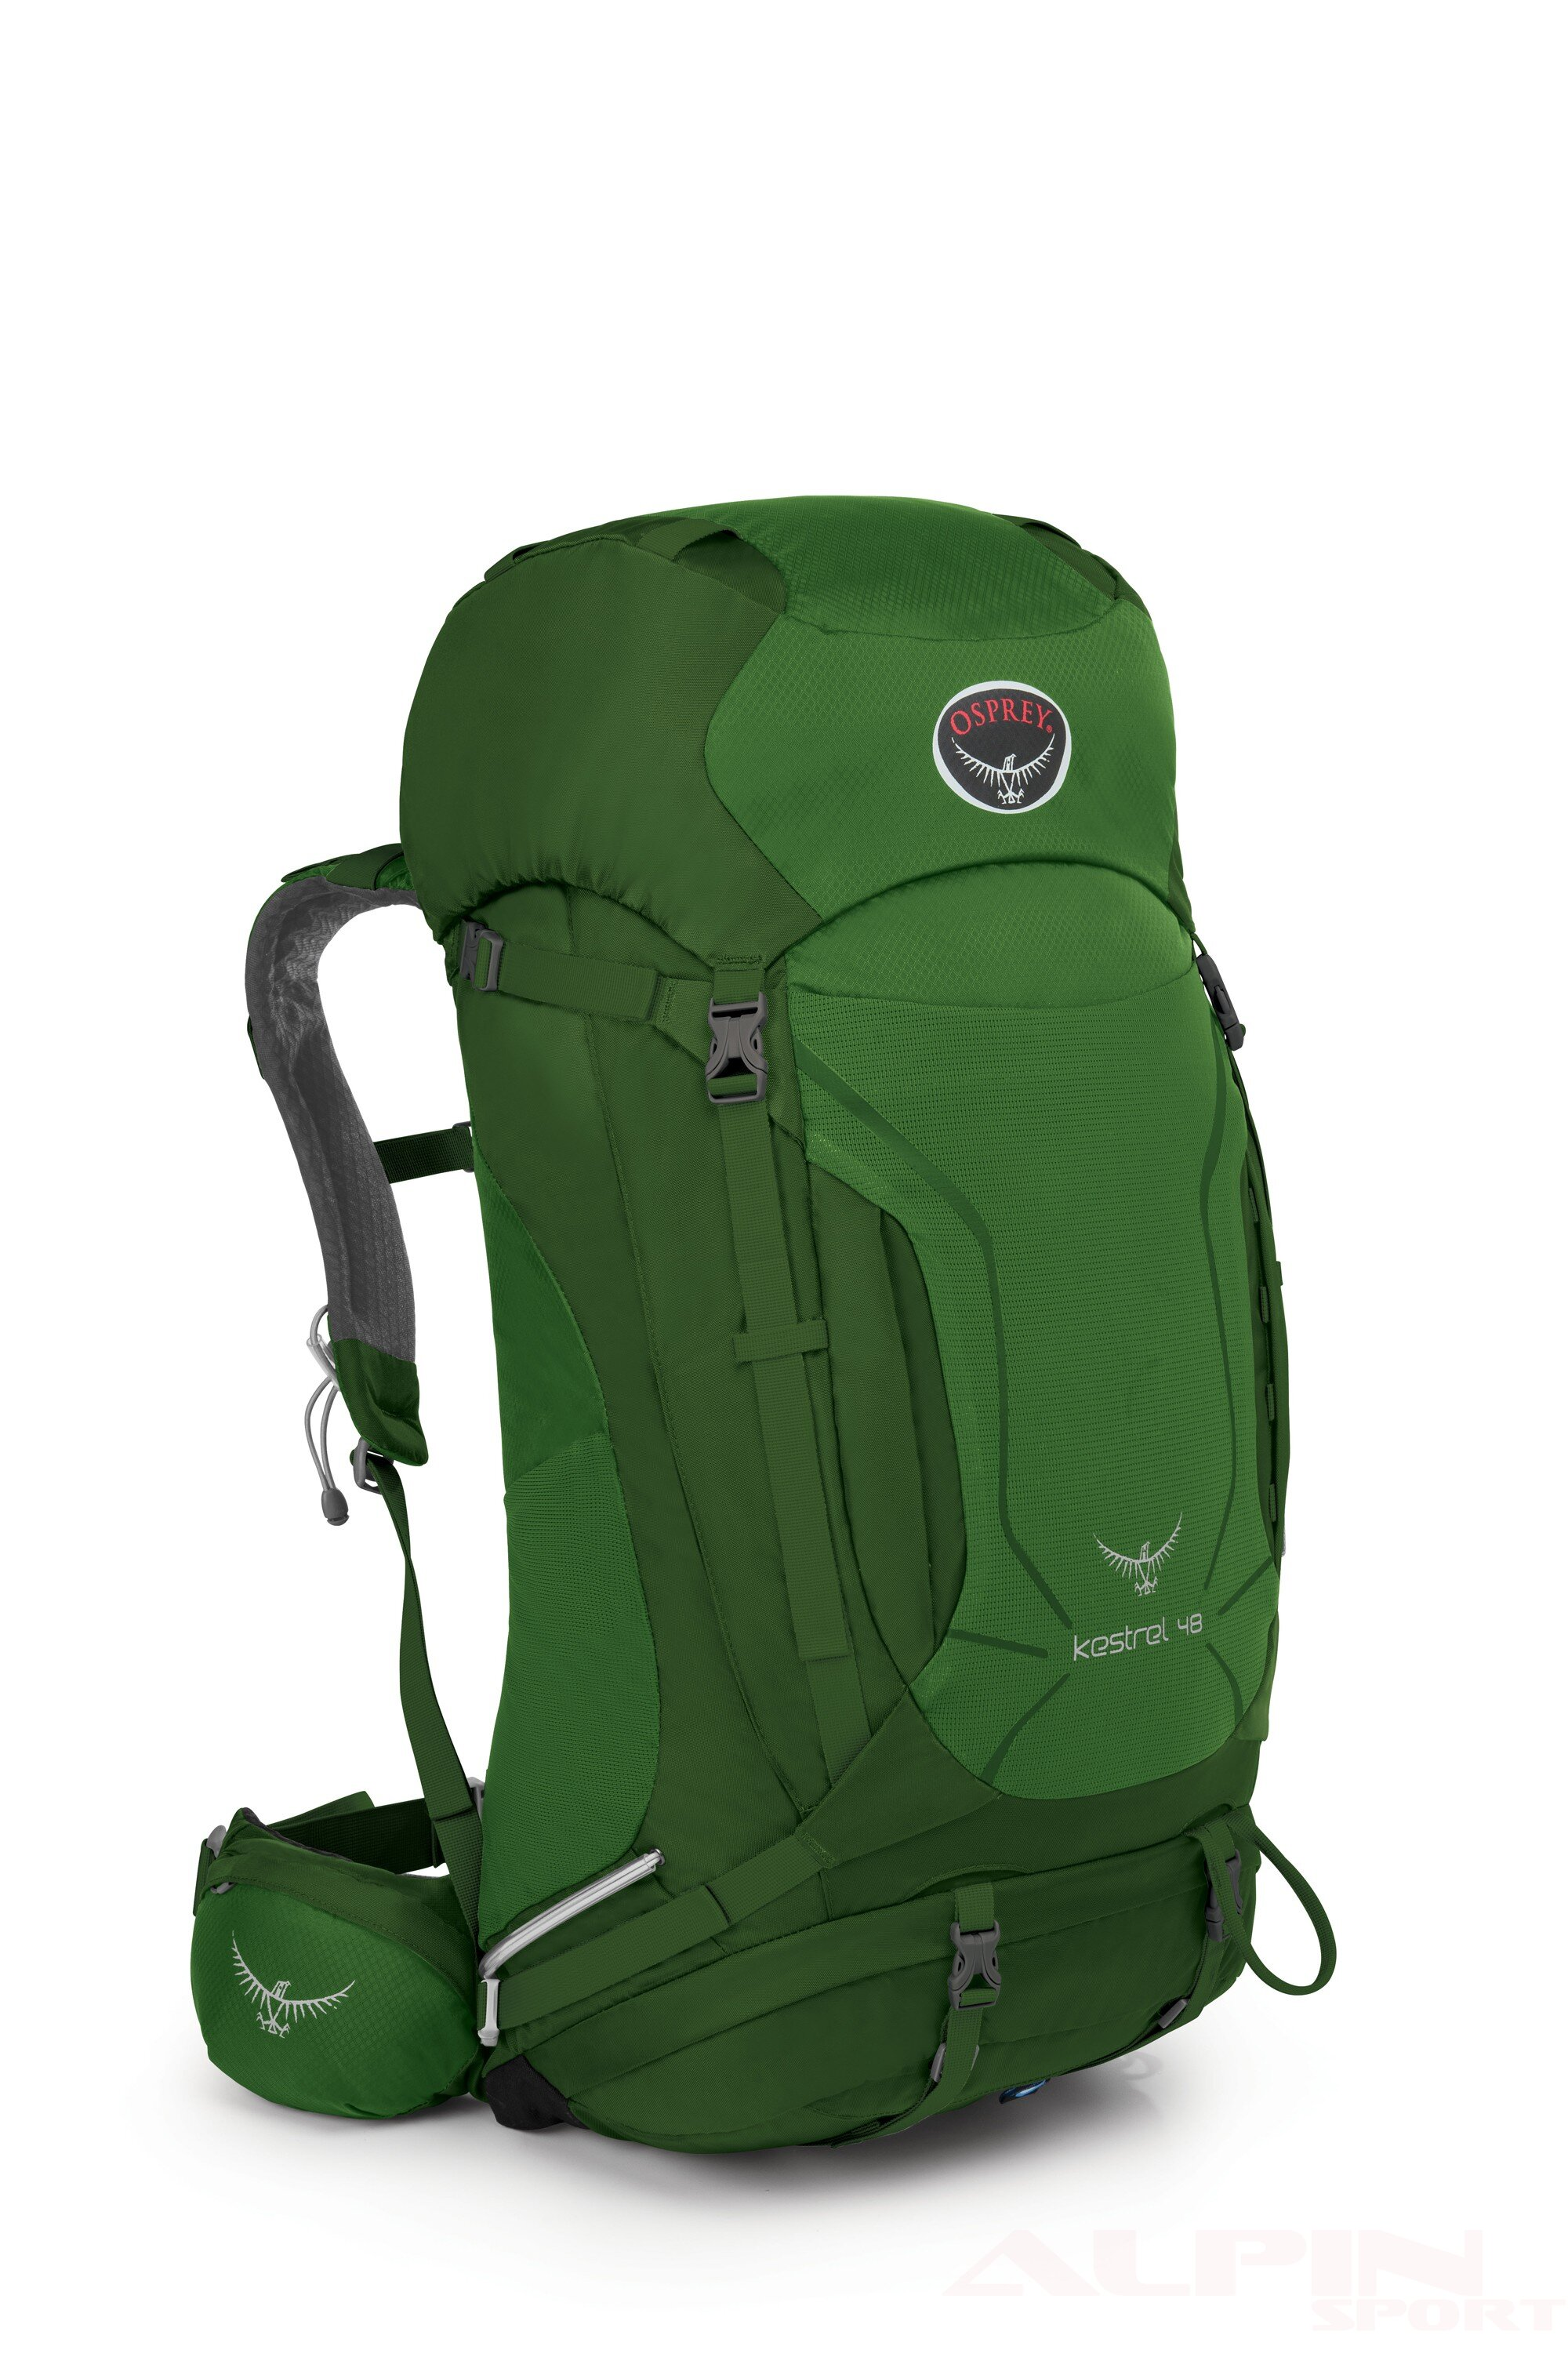 Plecak OSPREY Kestrel 48 M/L kestrel_48_jungle_green_1